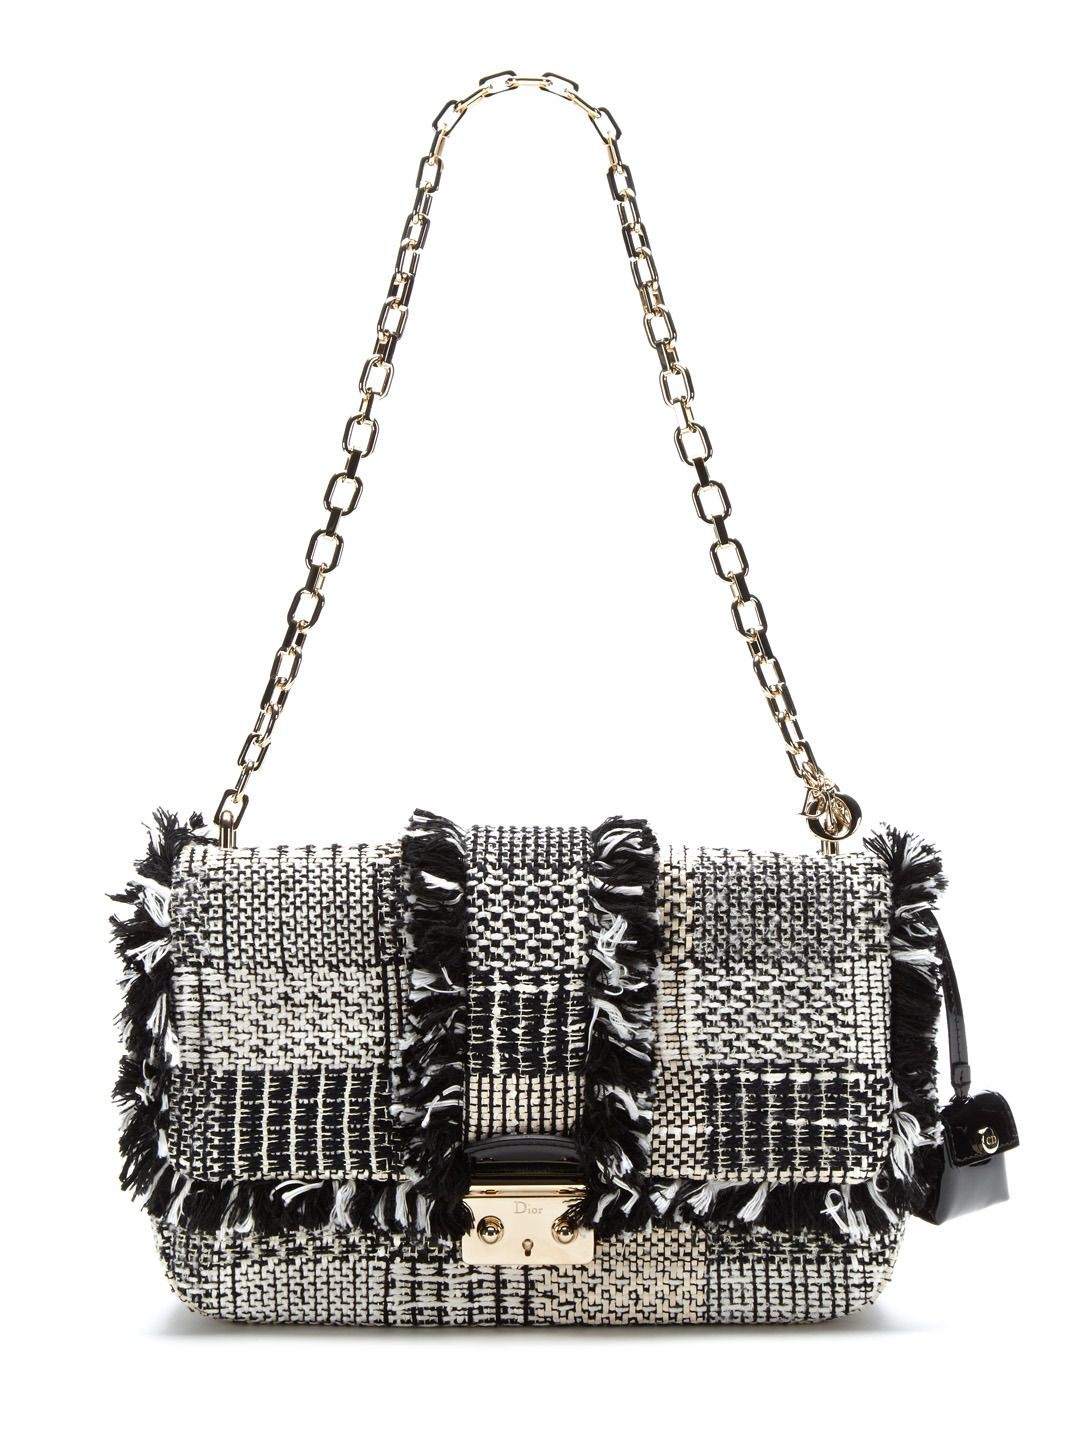 8aa2736c9bb9 Limited Edition Black and White Tweed Miss Dior Shoulder Flap Bag by  Christian Dior at Gilt